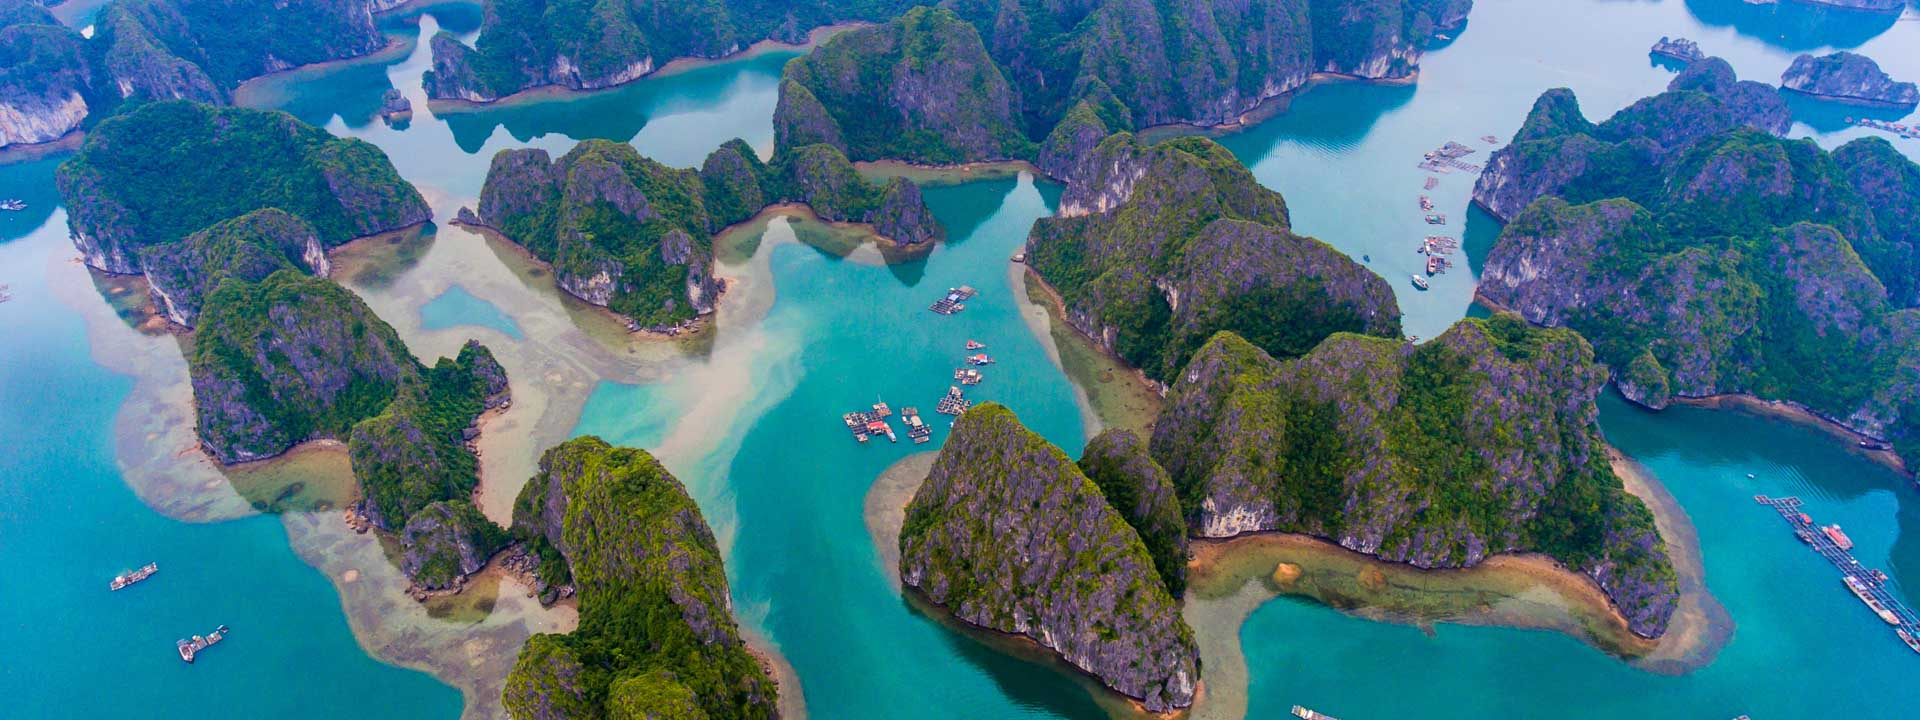 Heritage Ocean Expeditions Following the Coastline of Vietnam from North to South